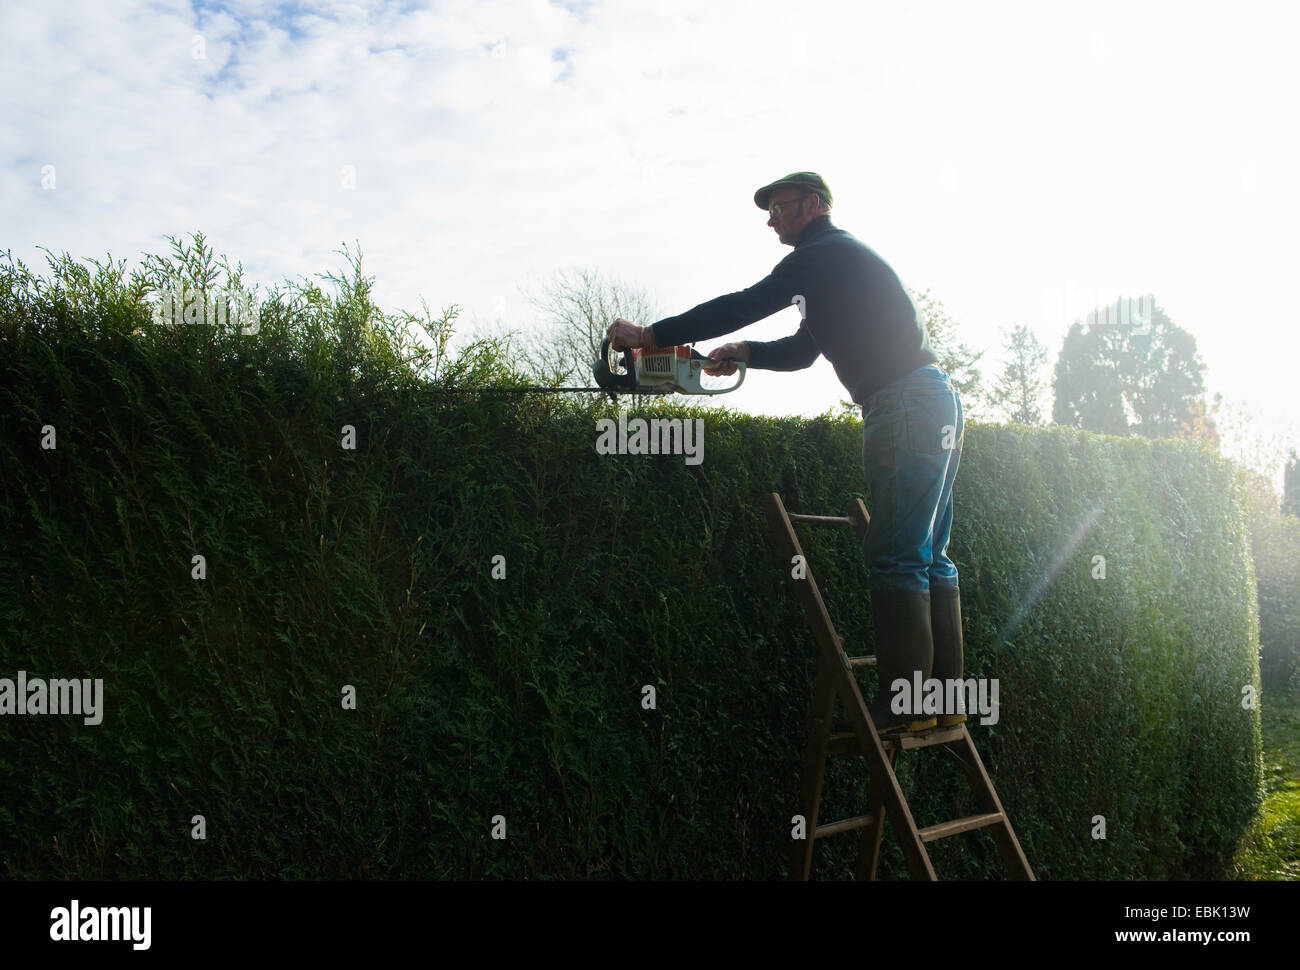 Silhouetted man on top of ladders trimming tall garden hedge - Stock Image